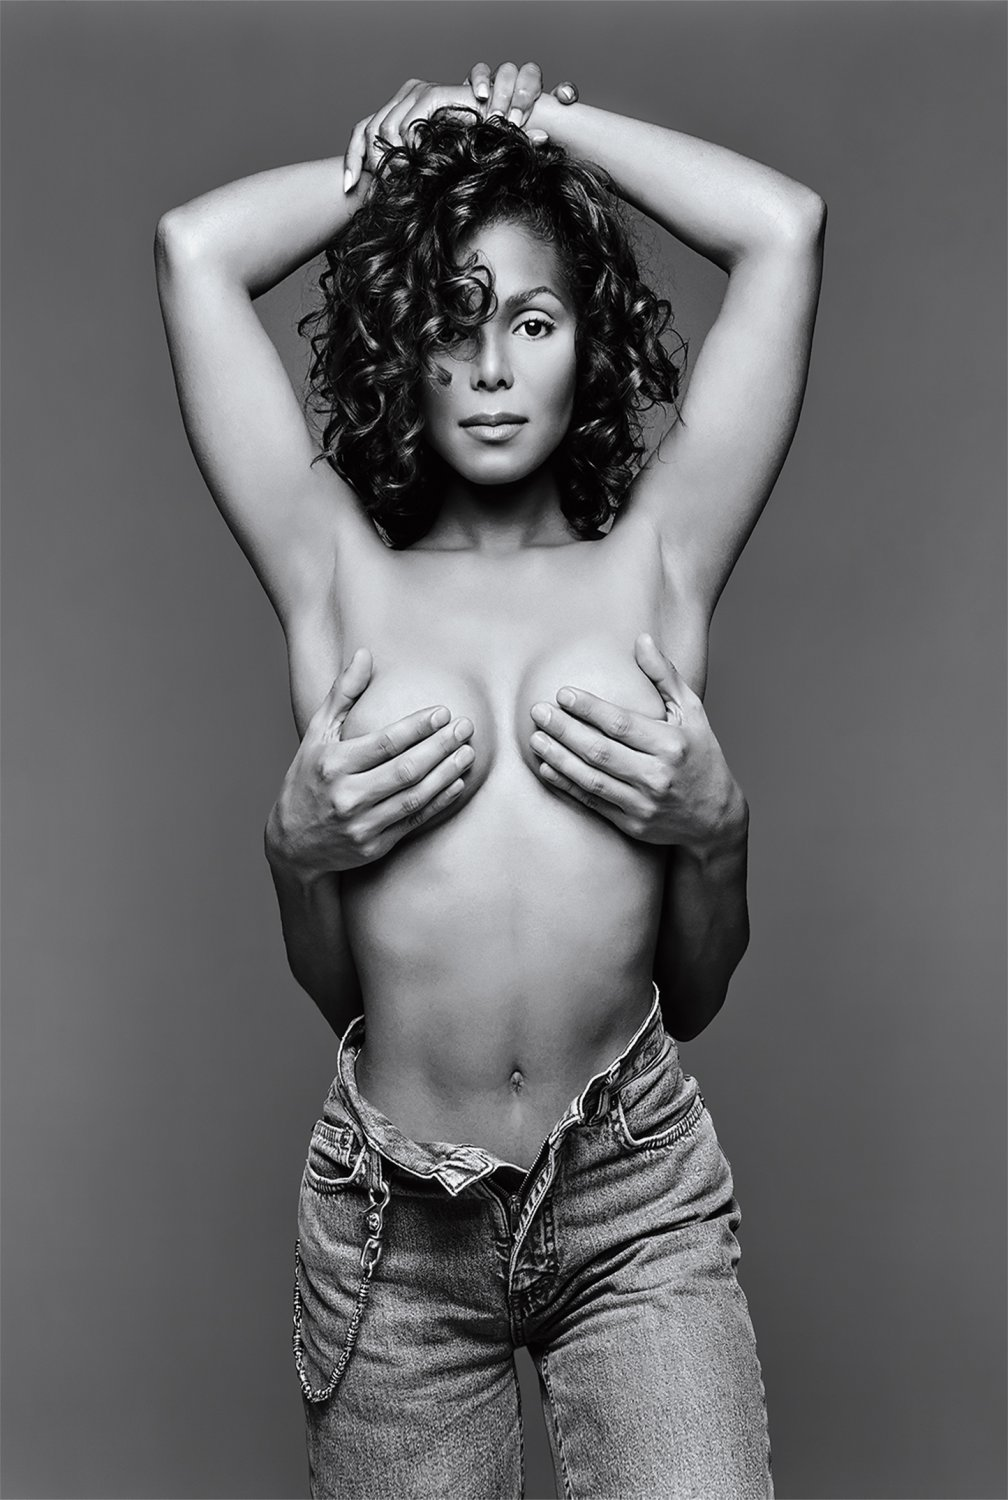 Janet Jackson 18x28 inches Poster Print